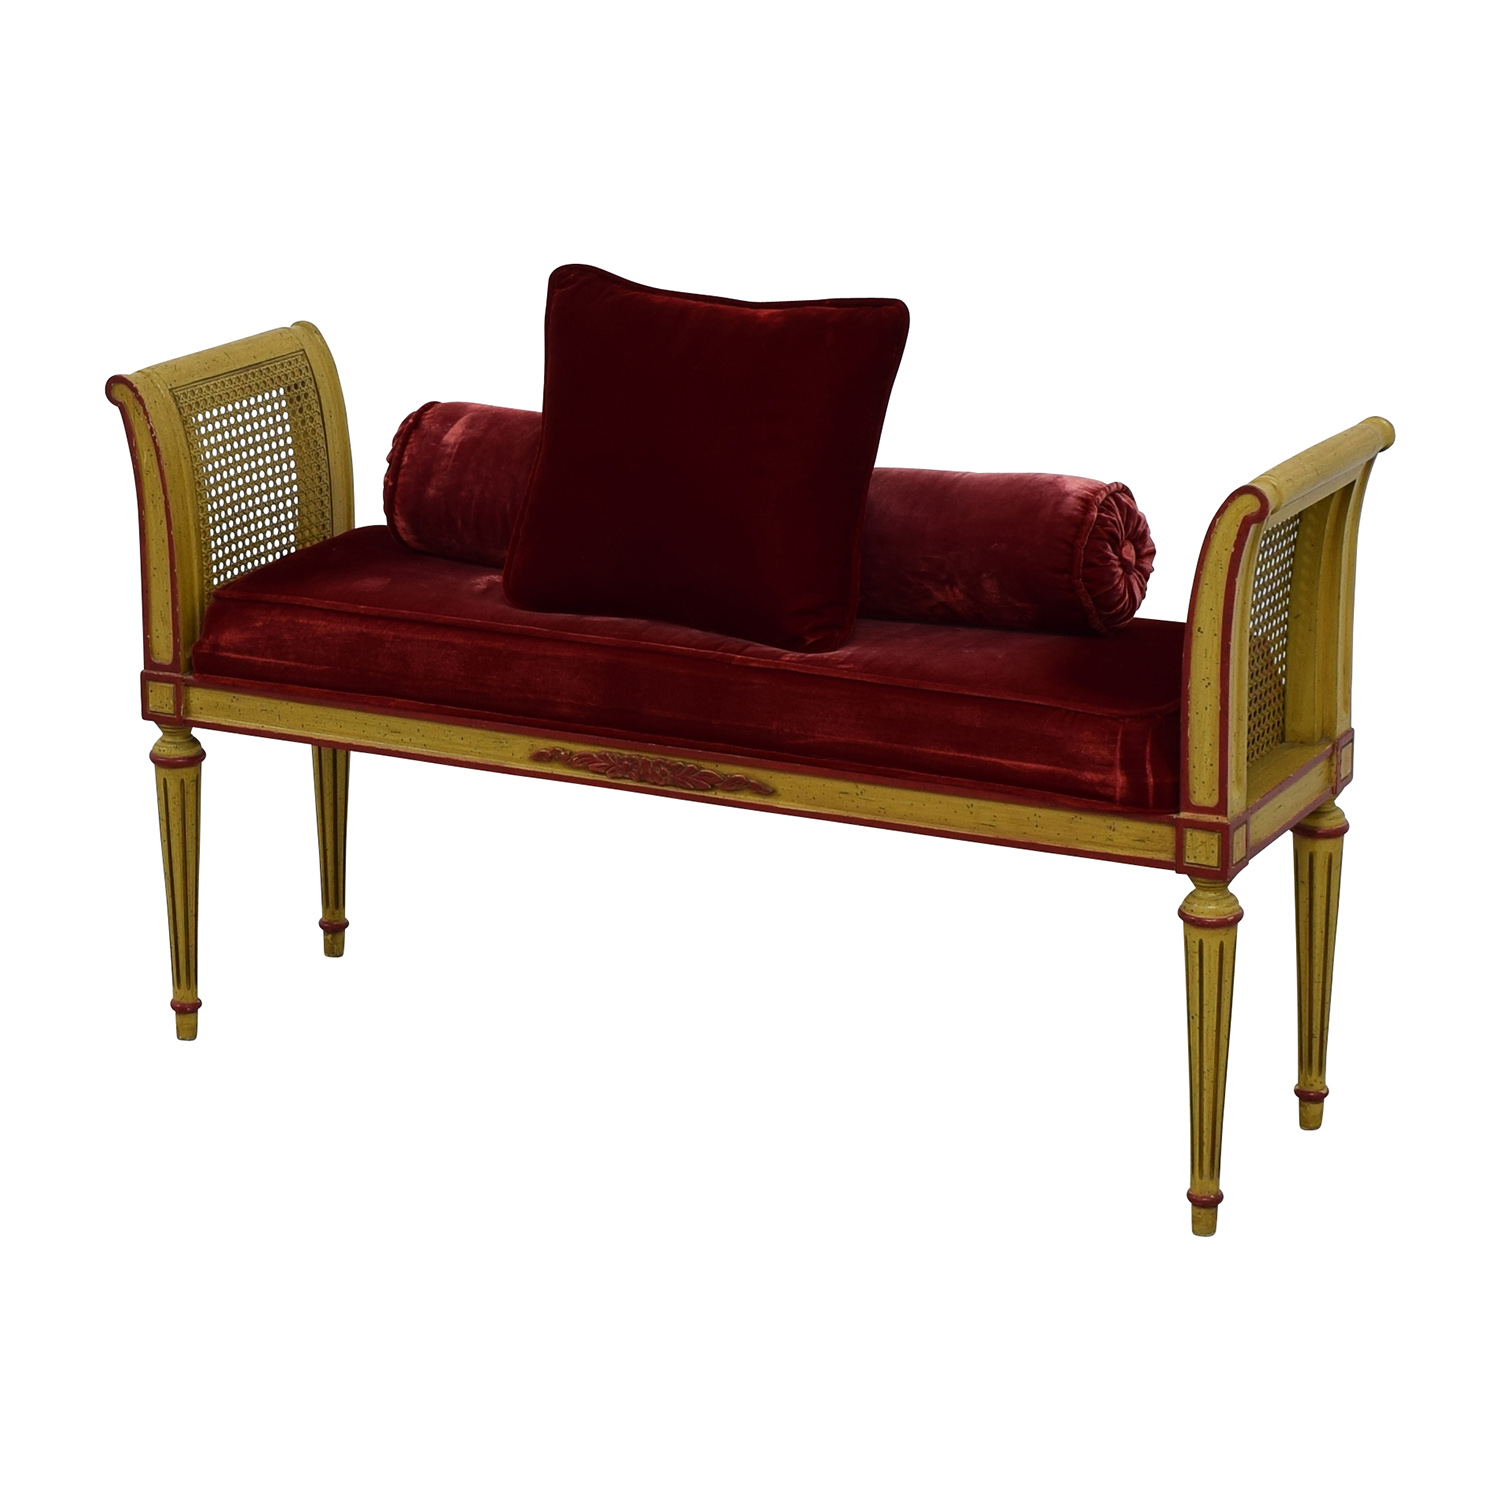 buy Antique Bench with Red Velvet Cushion and Pillow